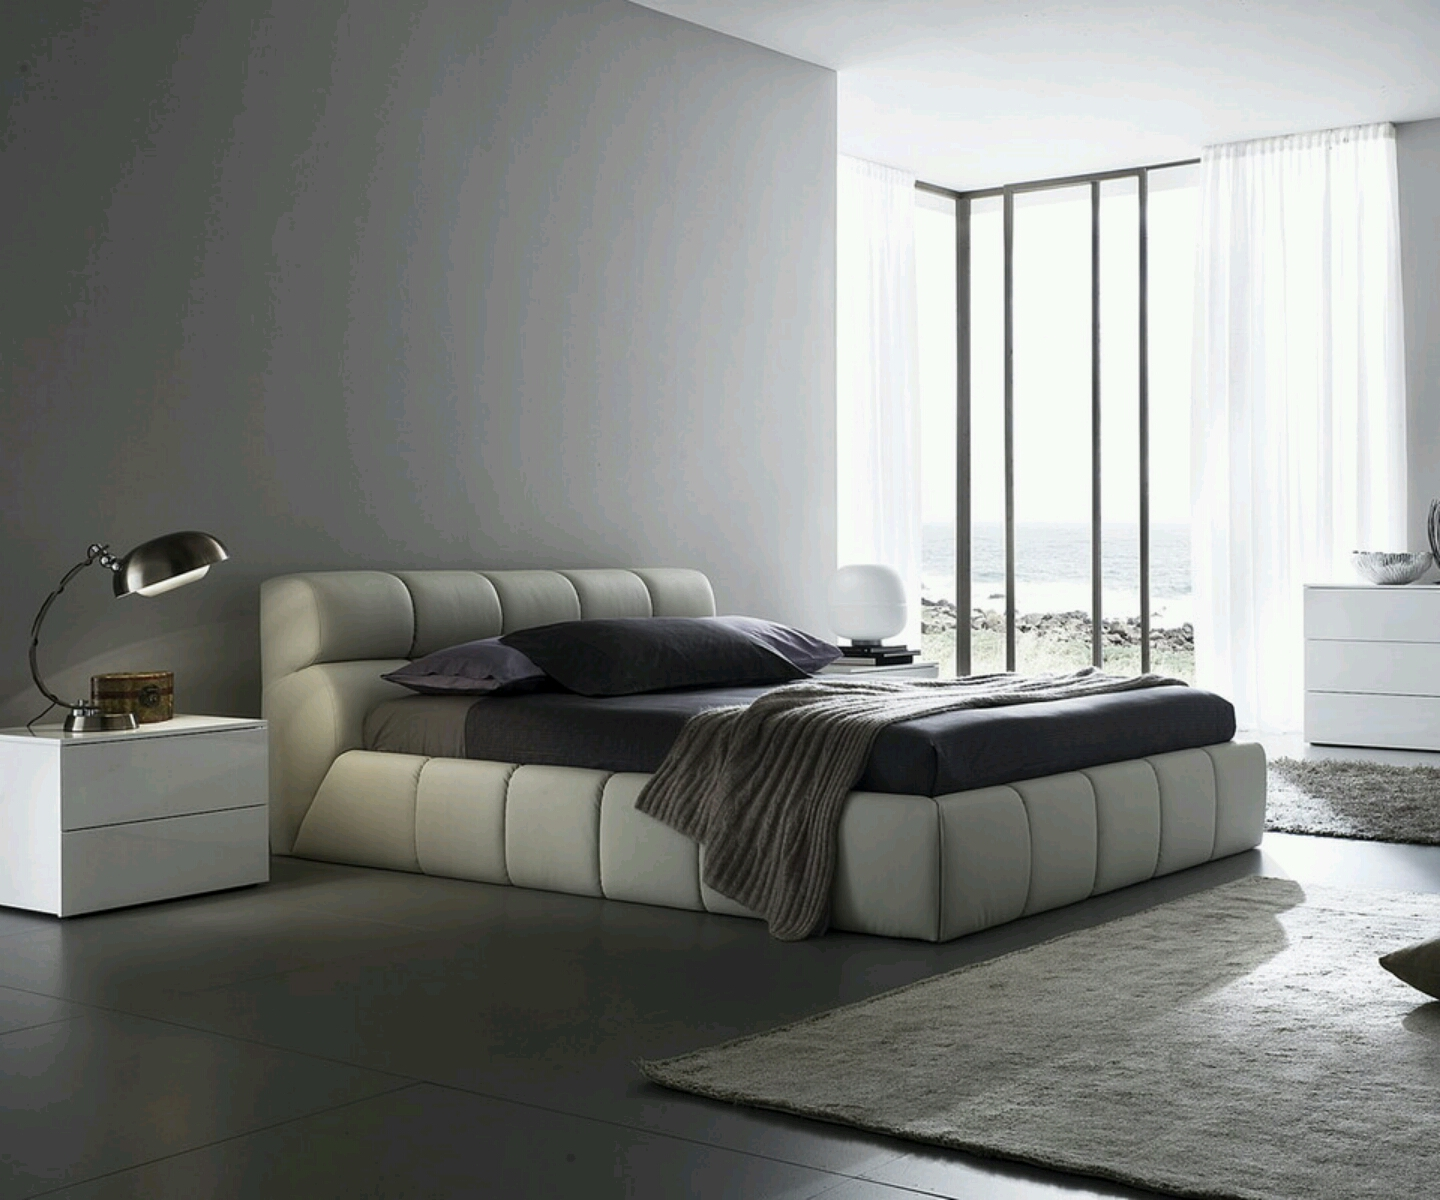 Modern Furniture Modern Bed Designs Beautiful Bedrooms: modern bedroom designs 2012